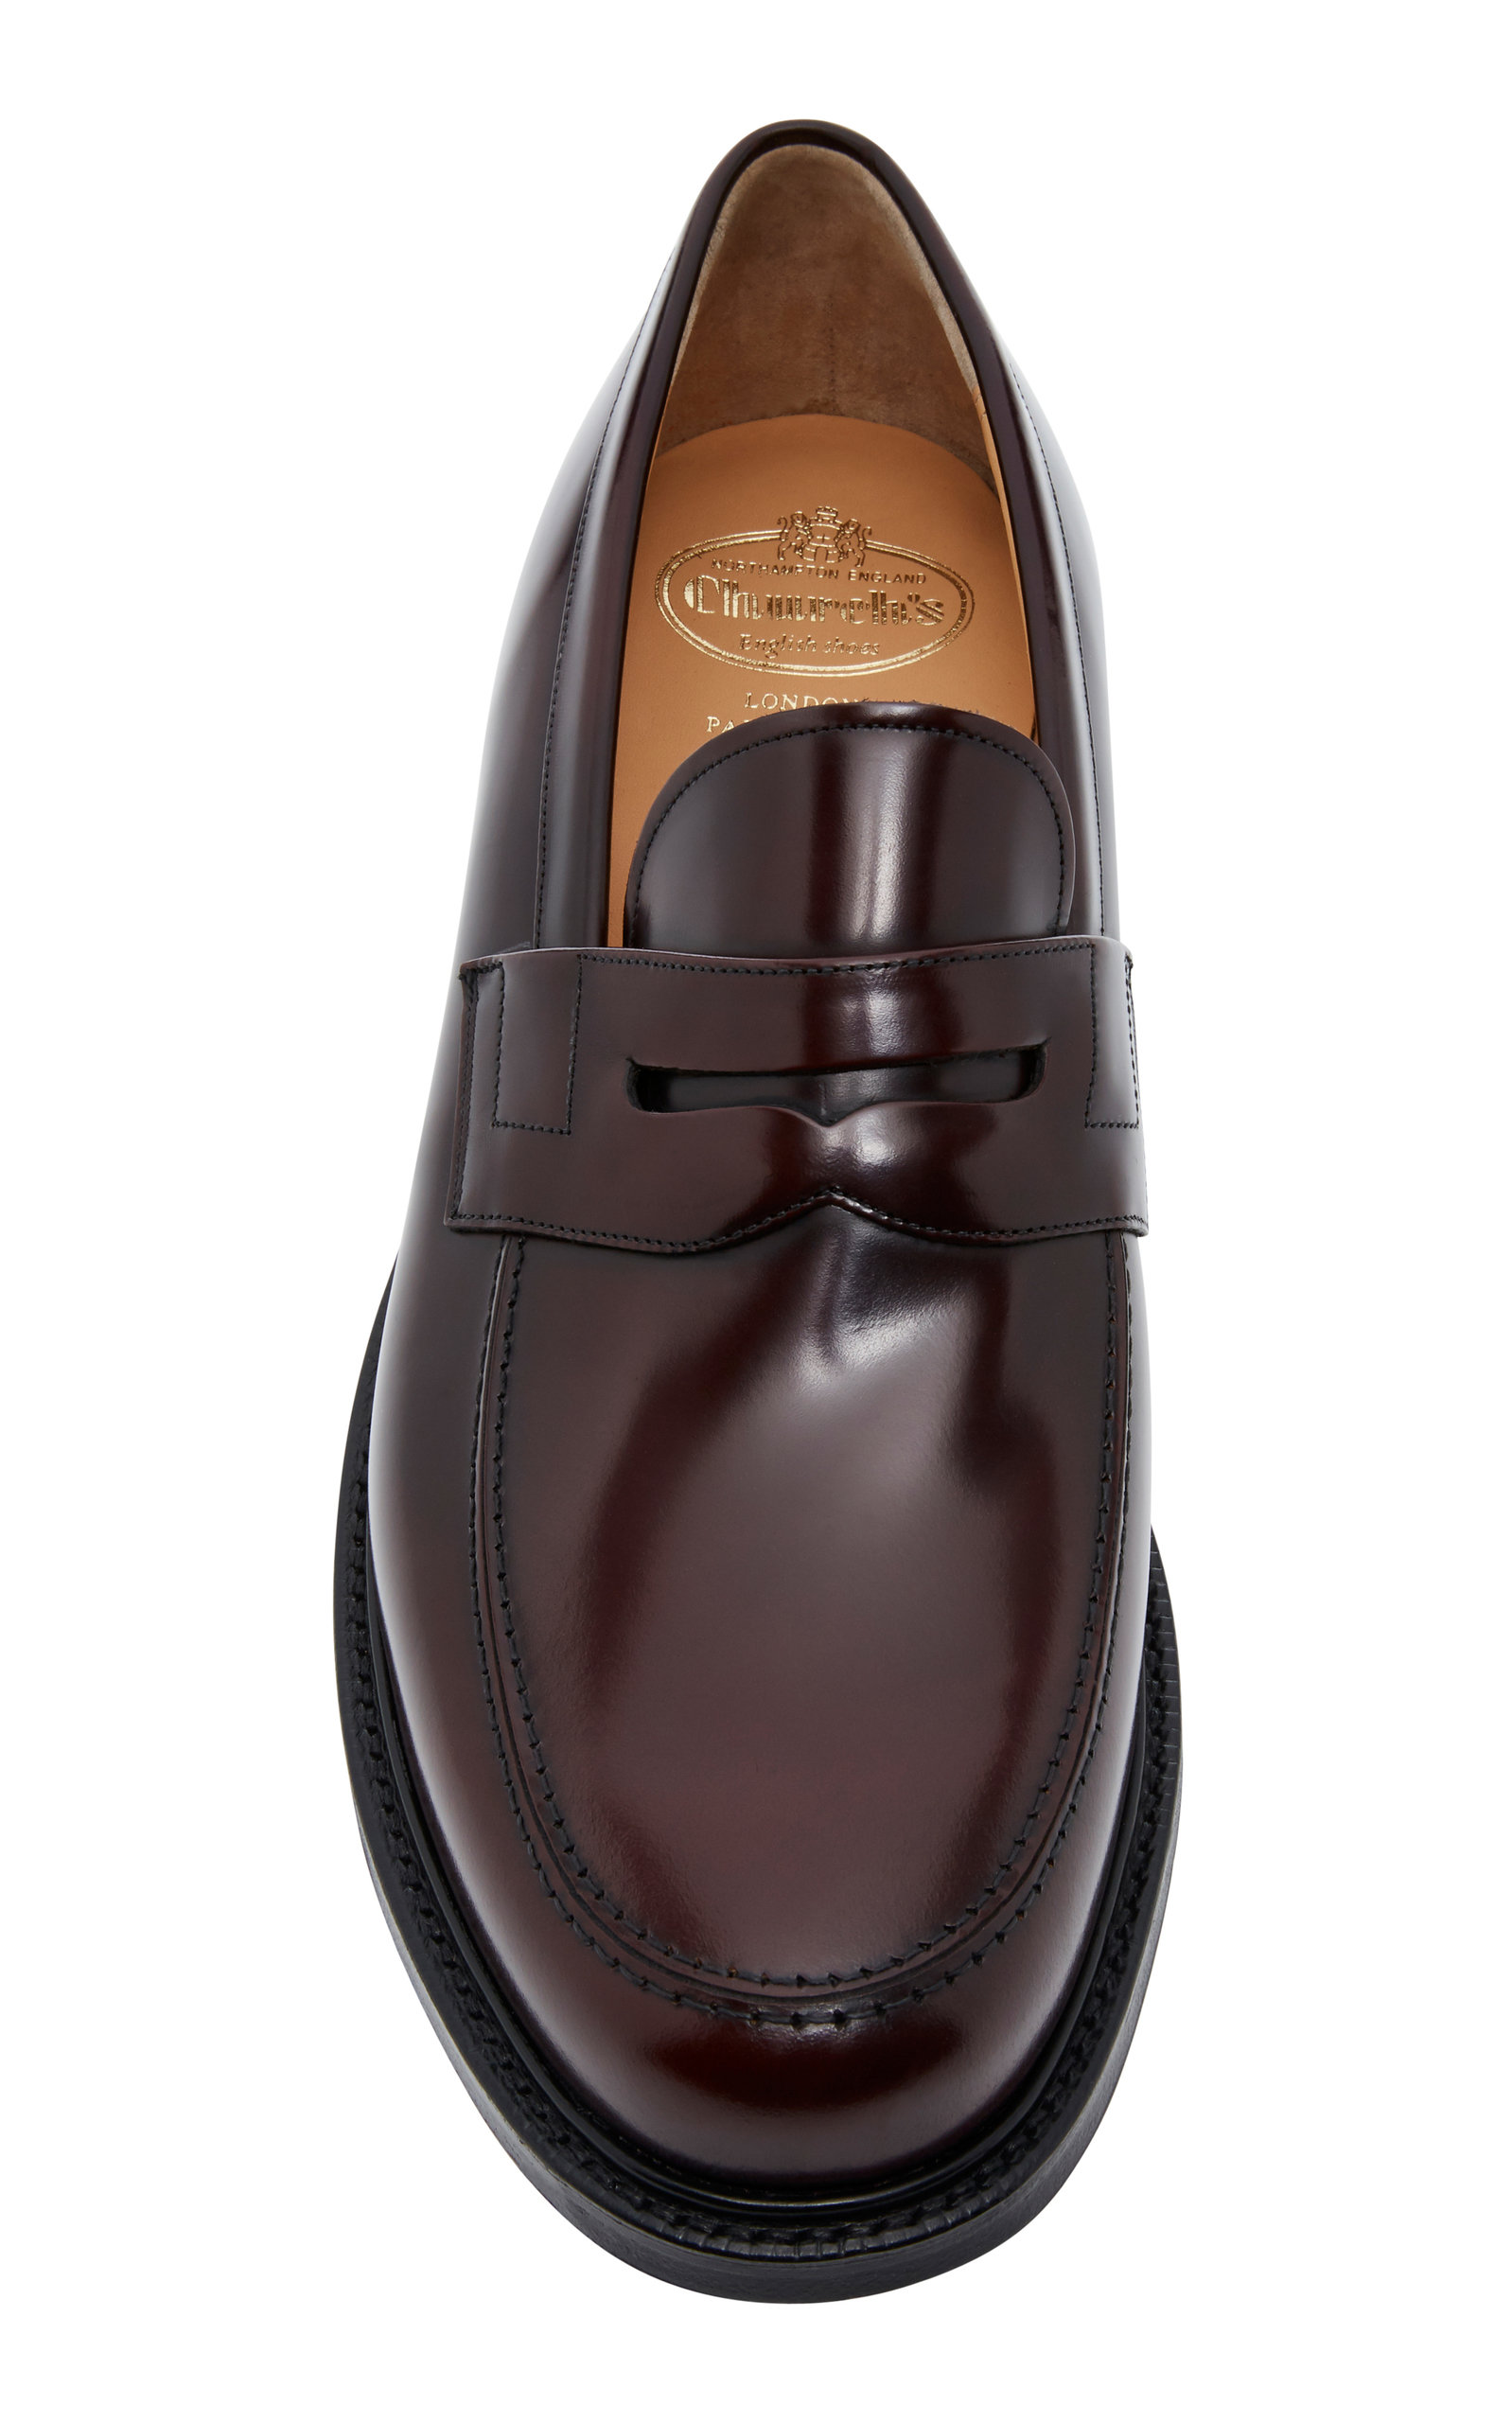 9386bd0a5844 Church sStaden Polished-Leather Penny Loafers. CLOSE. Loading. Loading.  Loading